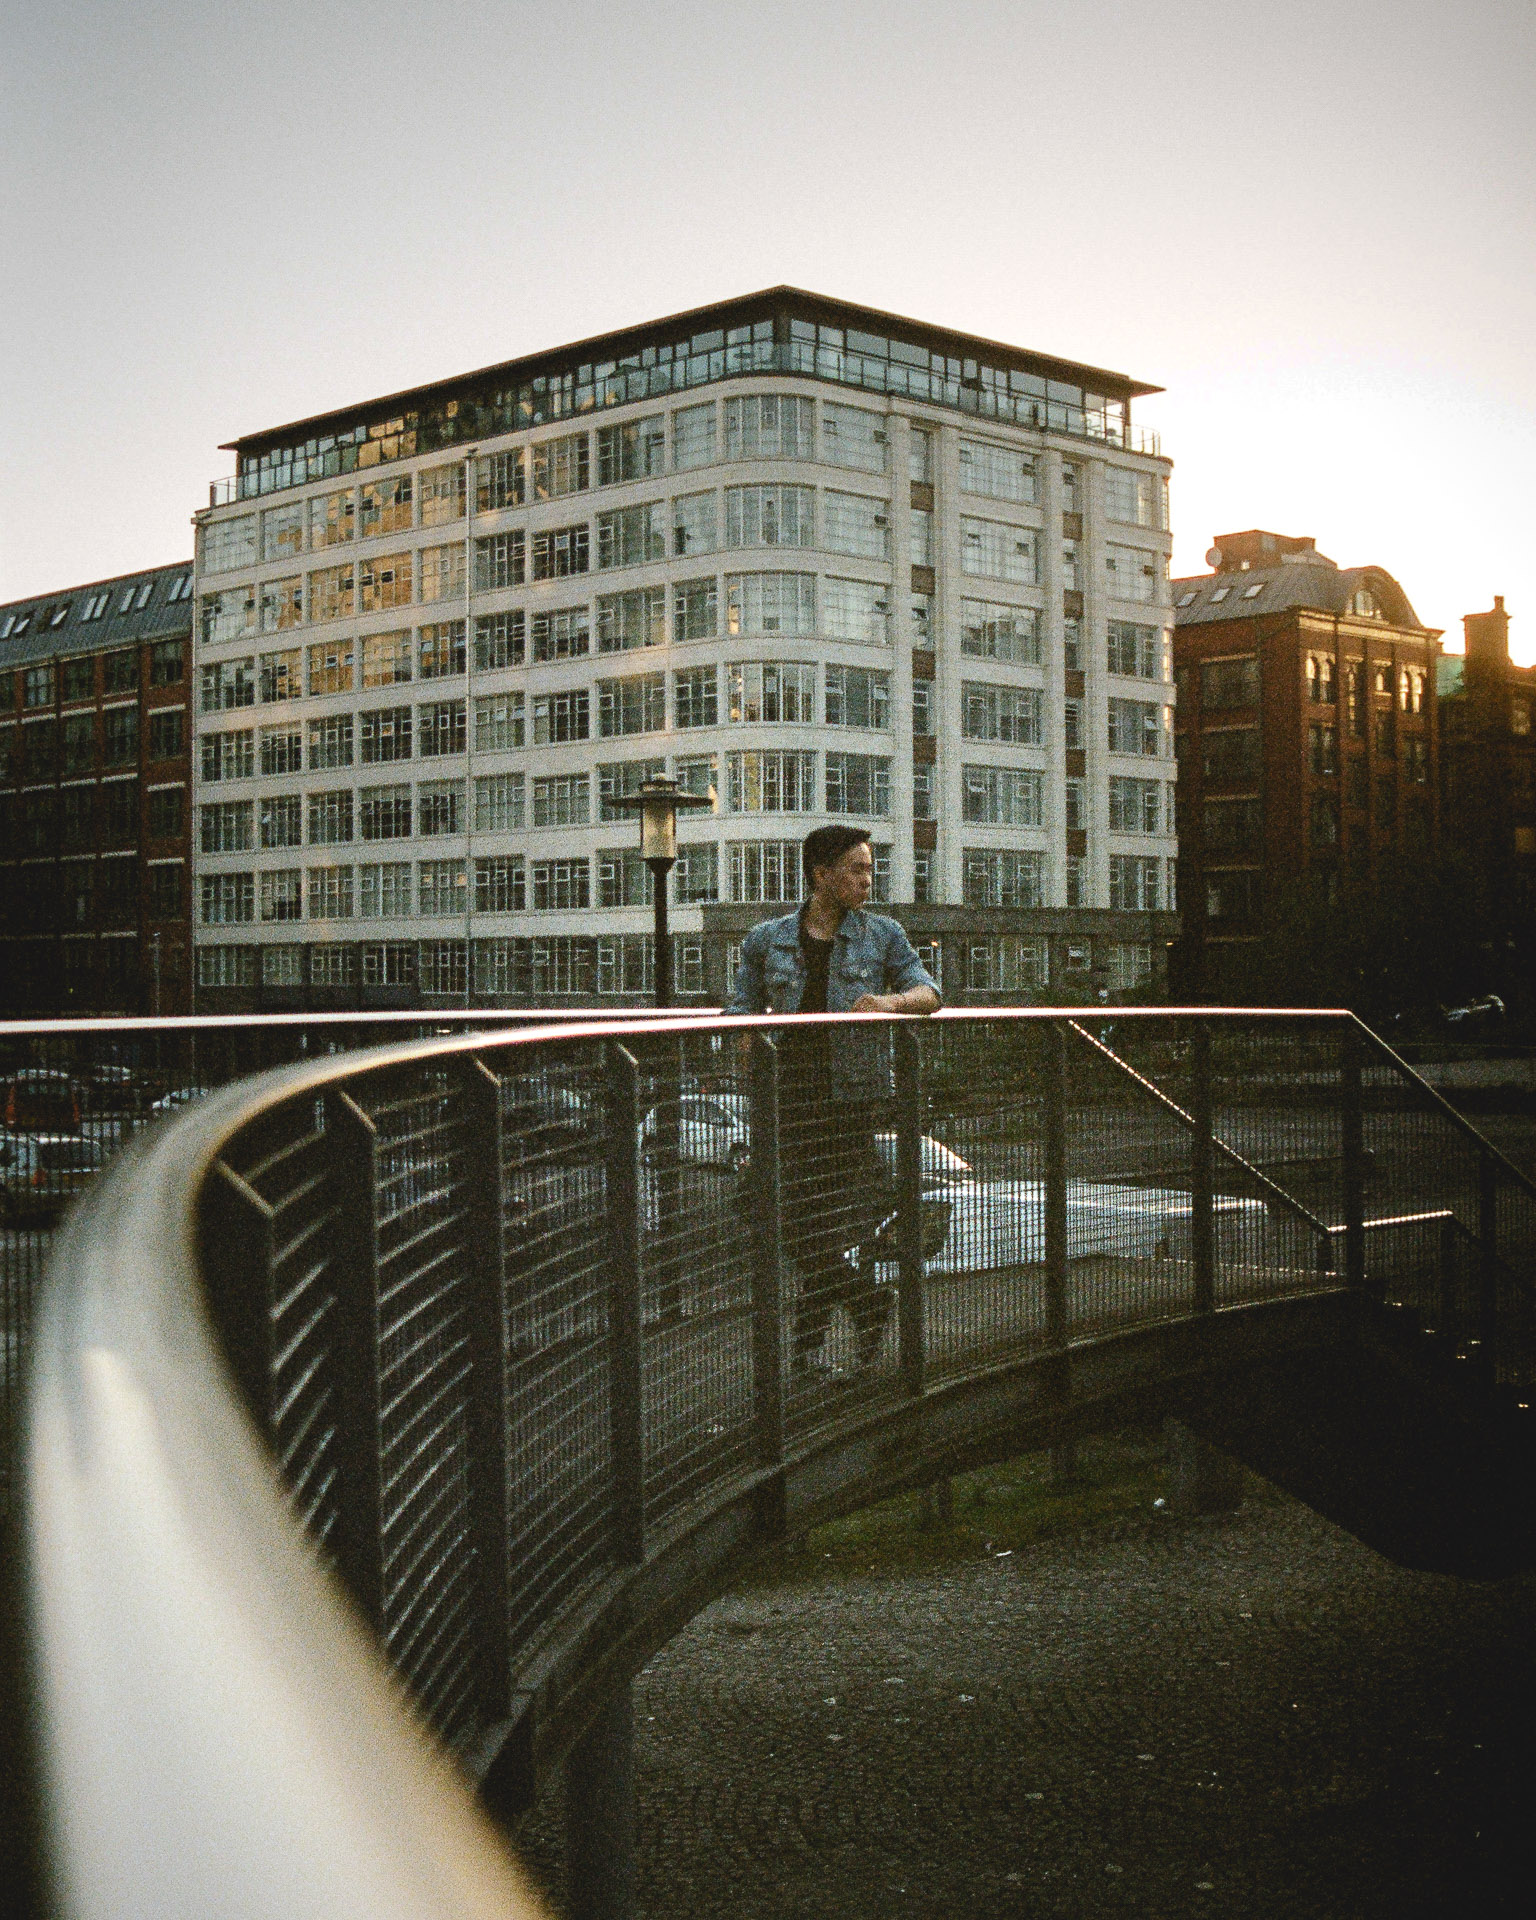 A man stands on a curved bridge in front of a white art-deco apartment block.